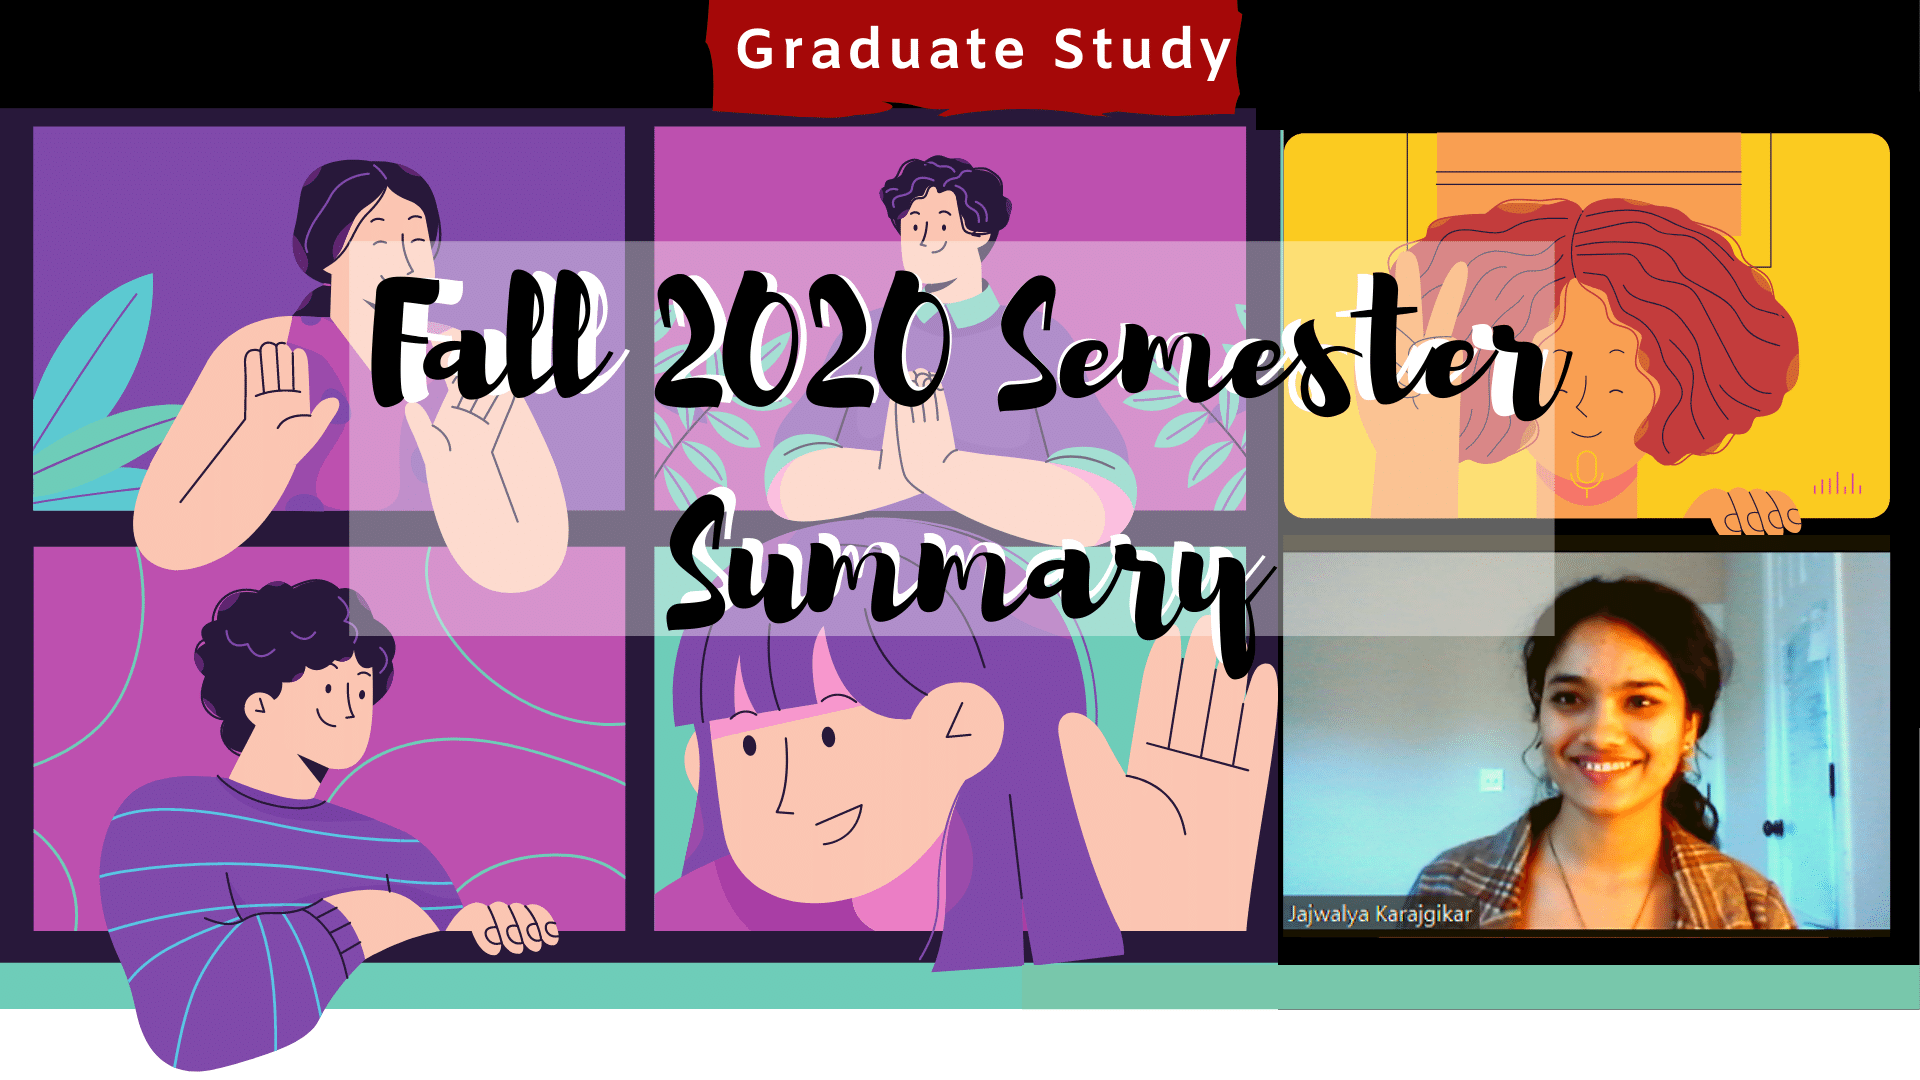 Grad School Fall 2020 Summary Banner, Graduate Study Tag, images of people video conference zooming including a frame of Jaj